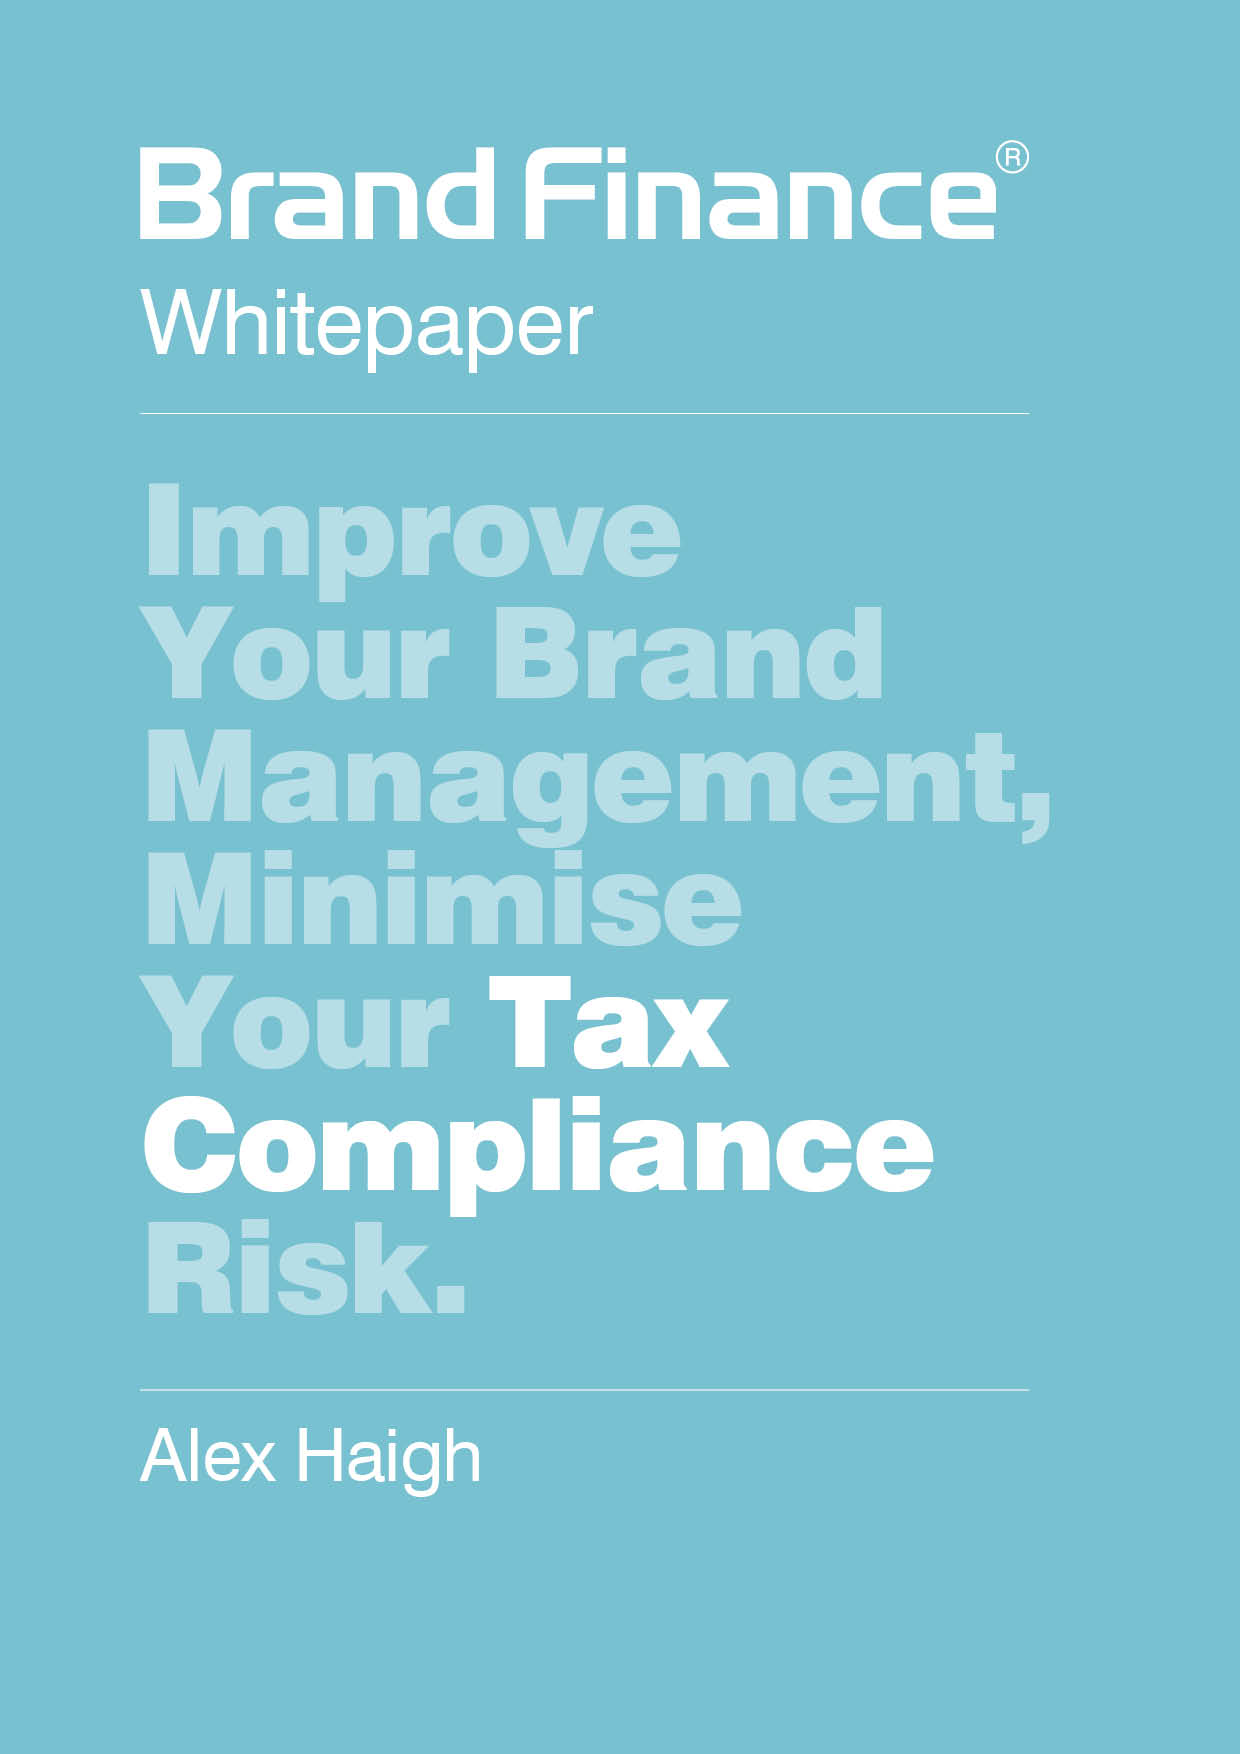 Improve Your Brand Management, Minimise Your Tax Compliance Risk